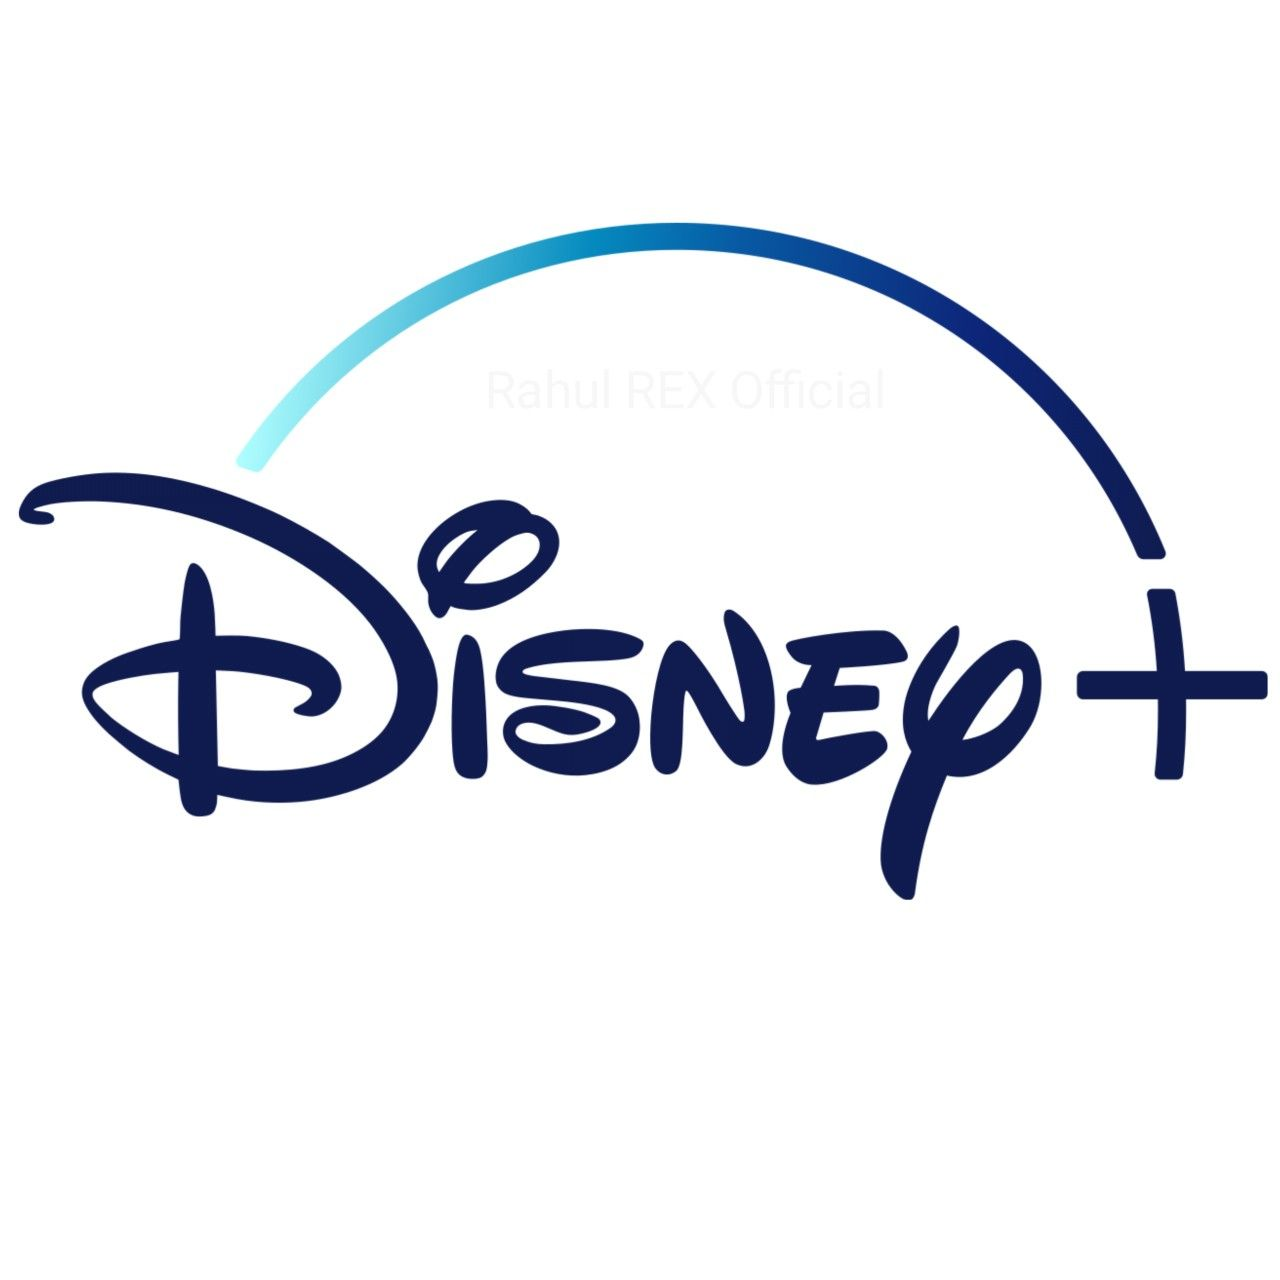 Disney + reduced from 69.99 euros to 59.99 euros for one year: limited offer until March 23